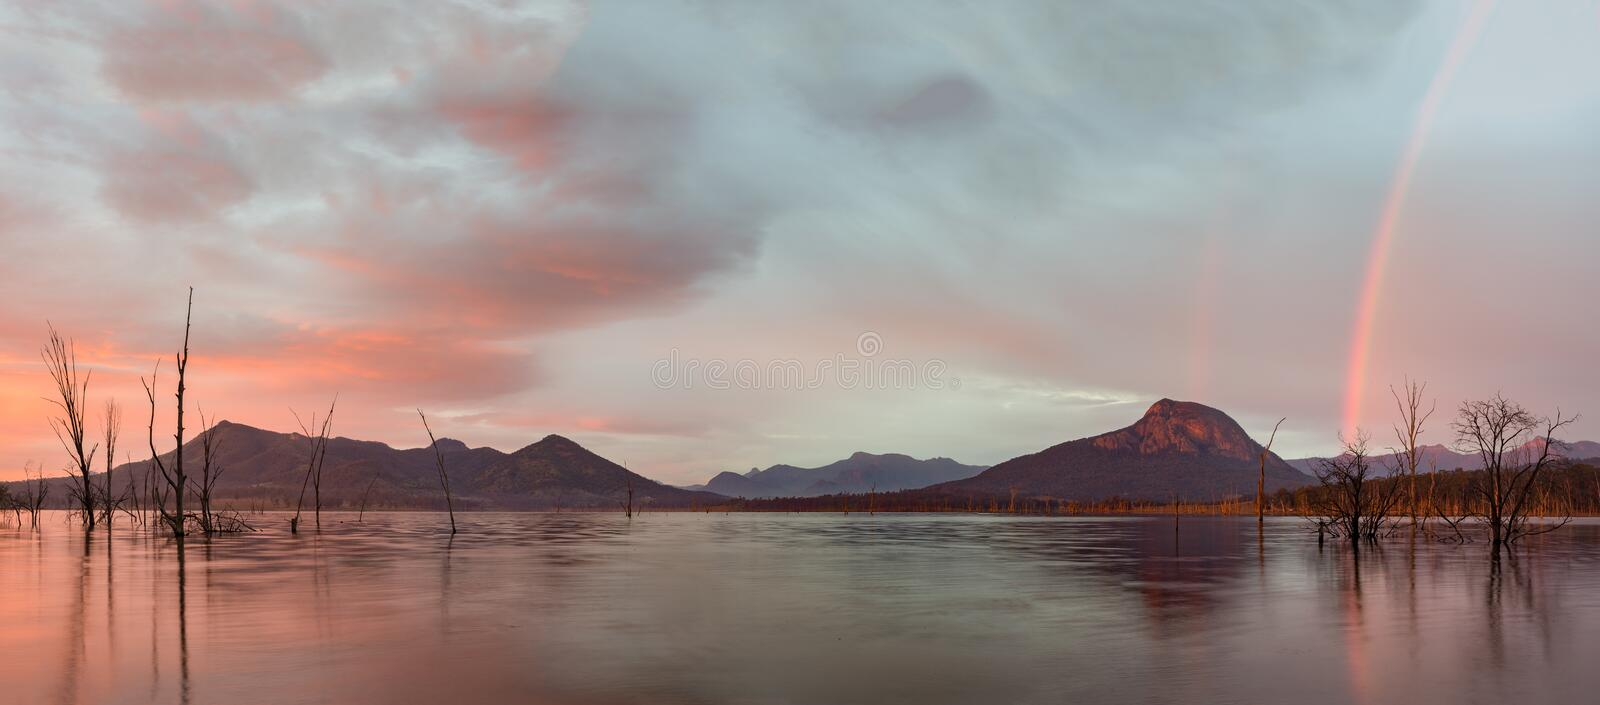 Stables by Sunset Scenic Rim, Queensland, Australia. Sunrise over Lake Moogerah with view of Mount Greville royalty free stock photos